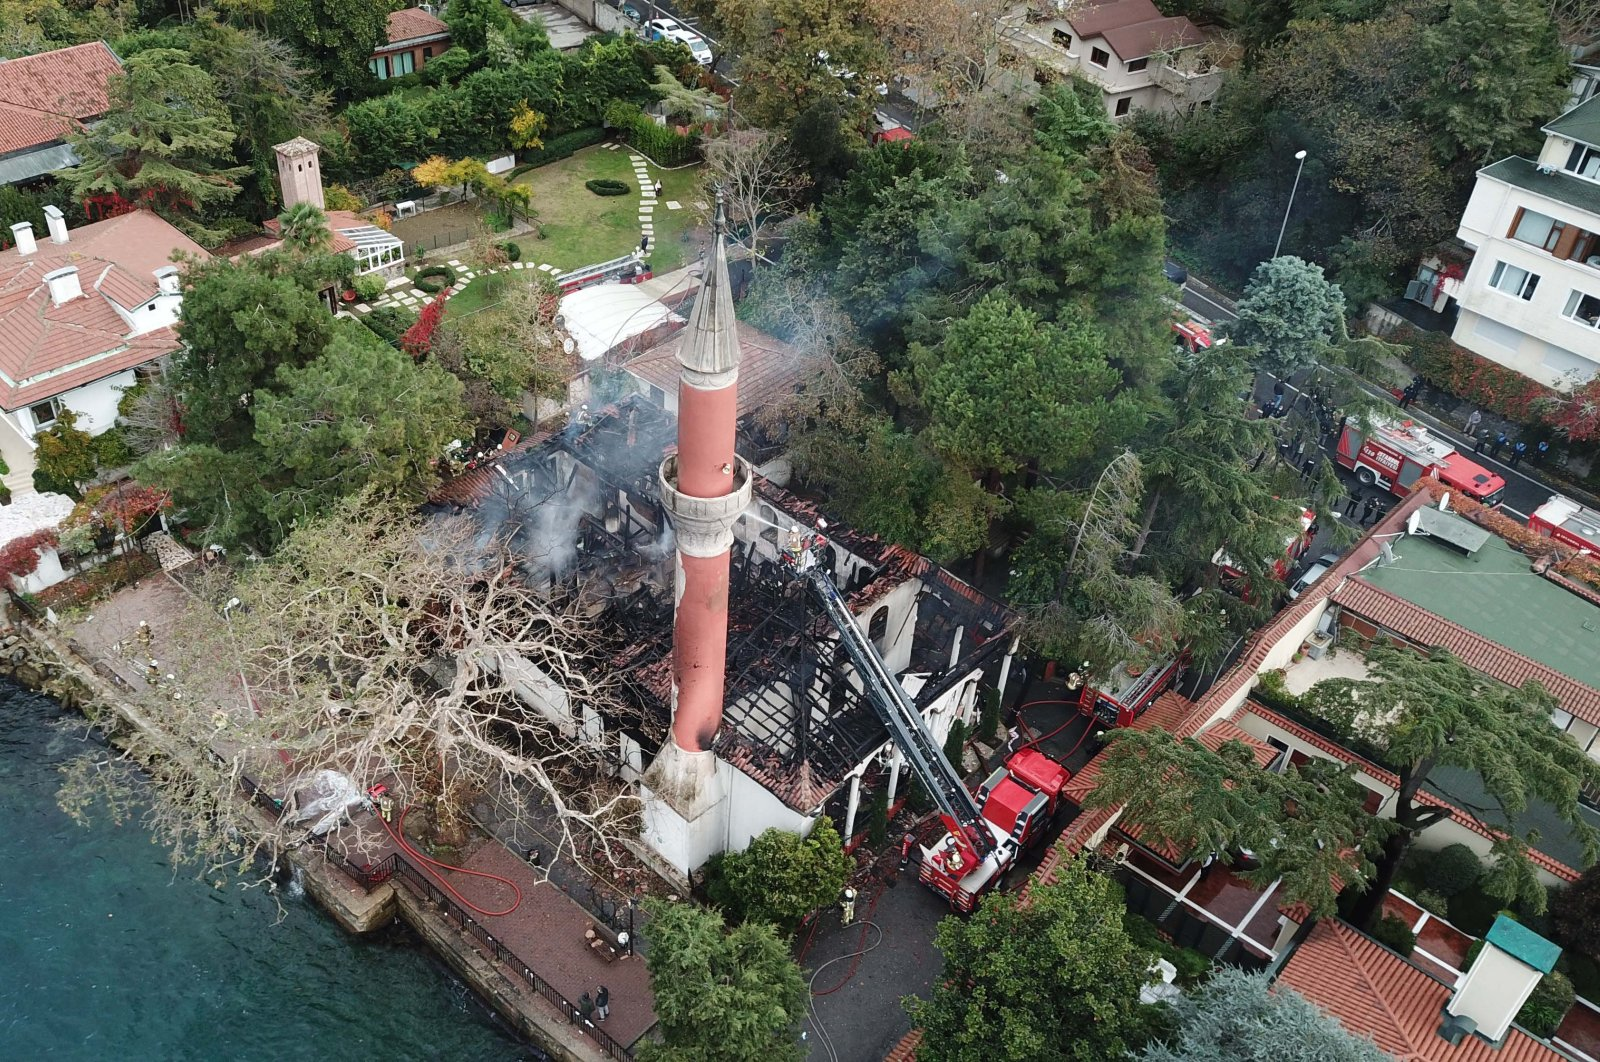 Vaniköy Mosque in Istanbul's Üsküdar district seen after the fire, Nov. 15, 2020. (DHA Photo)